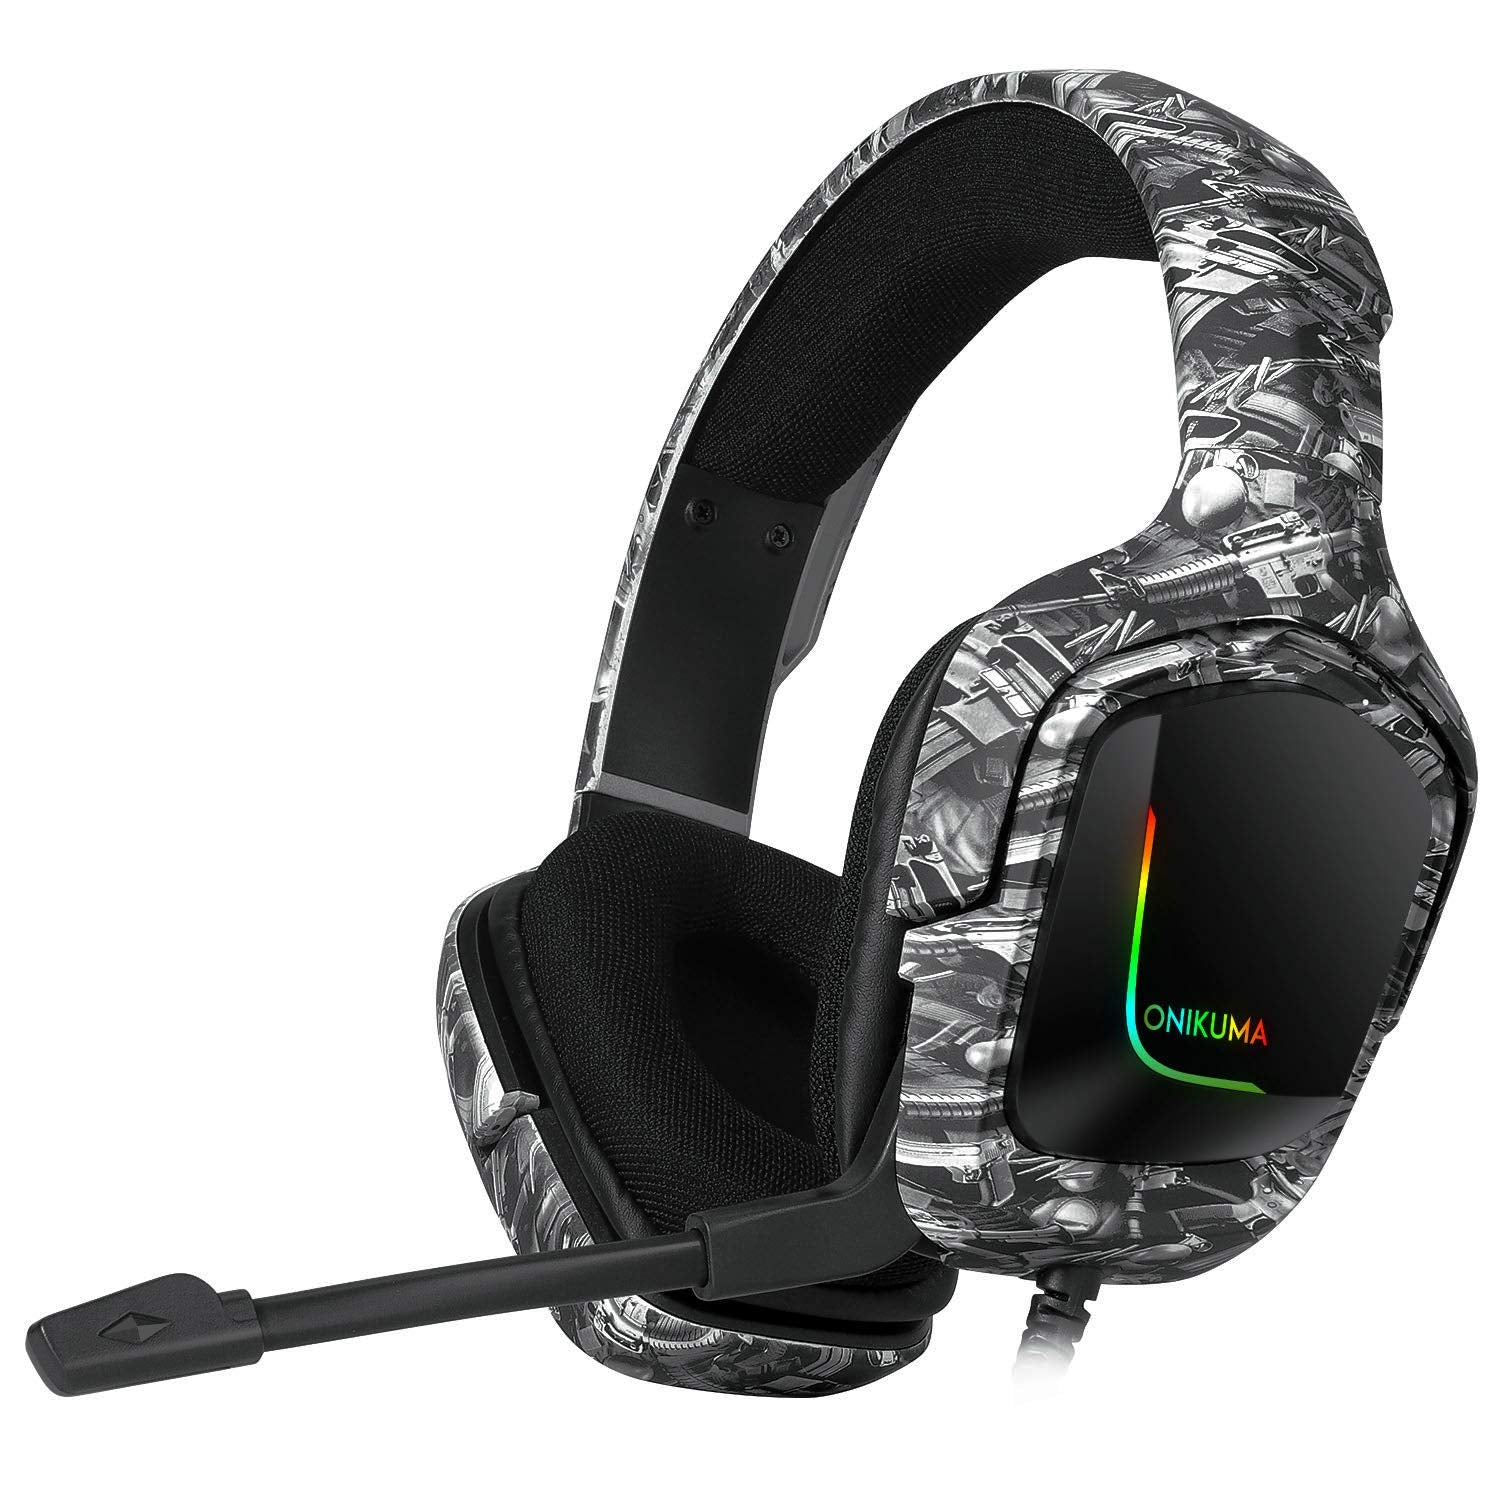 Onikuma K20 Gaming Headset Over-Ear Headphones With Microphone - Black